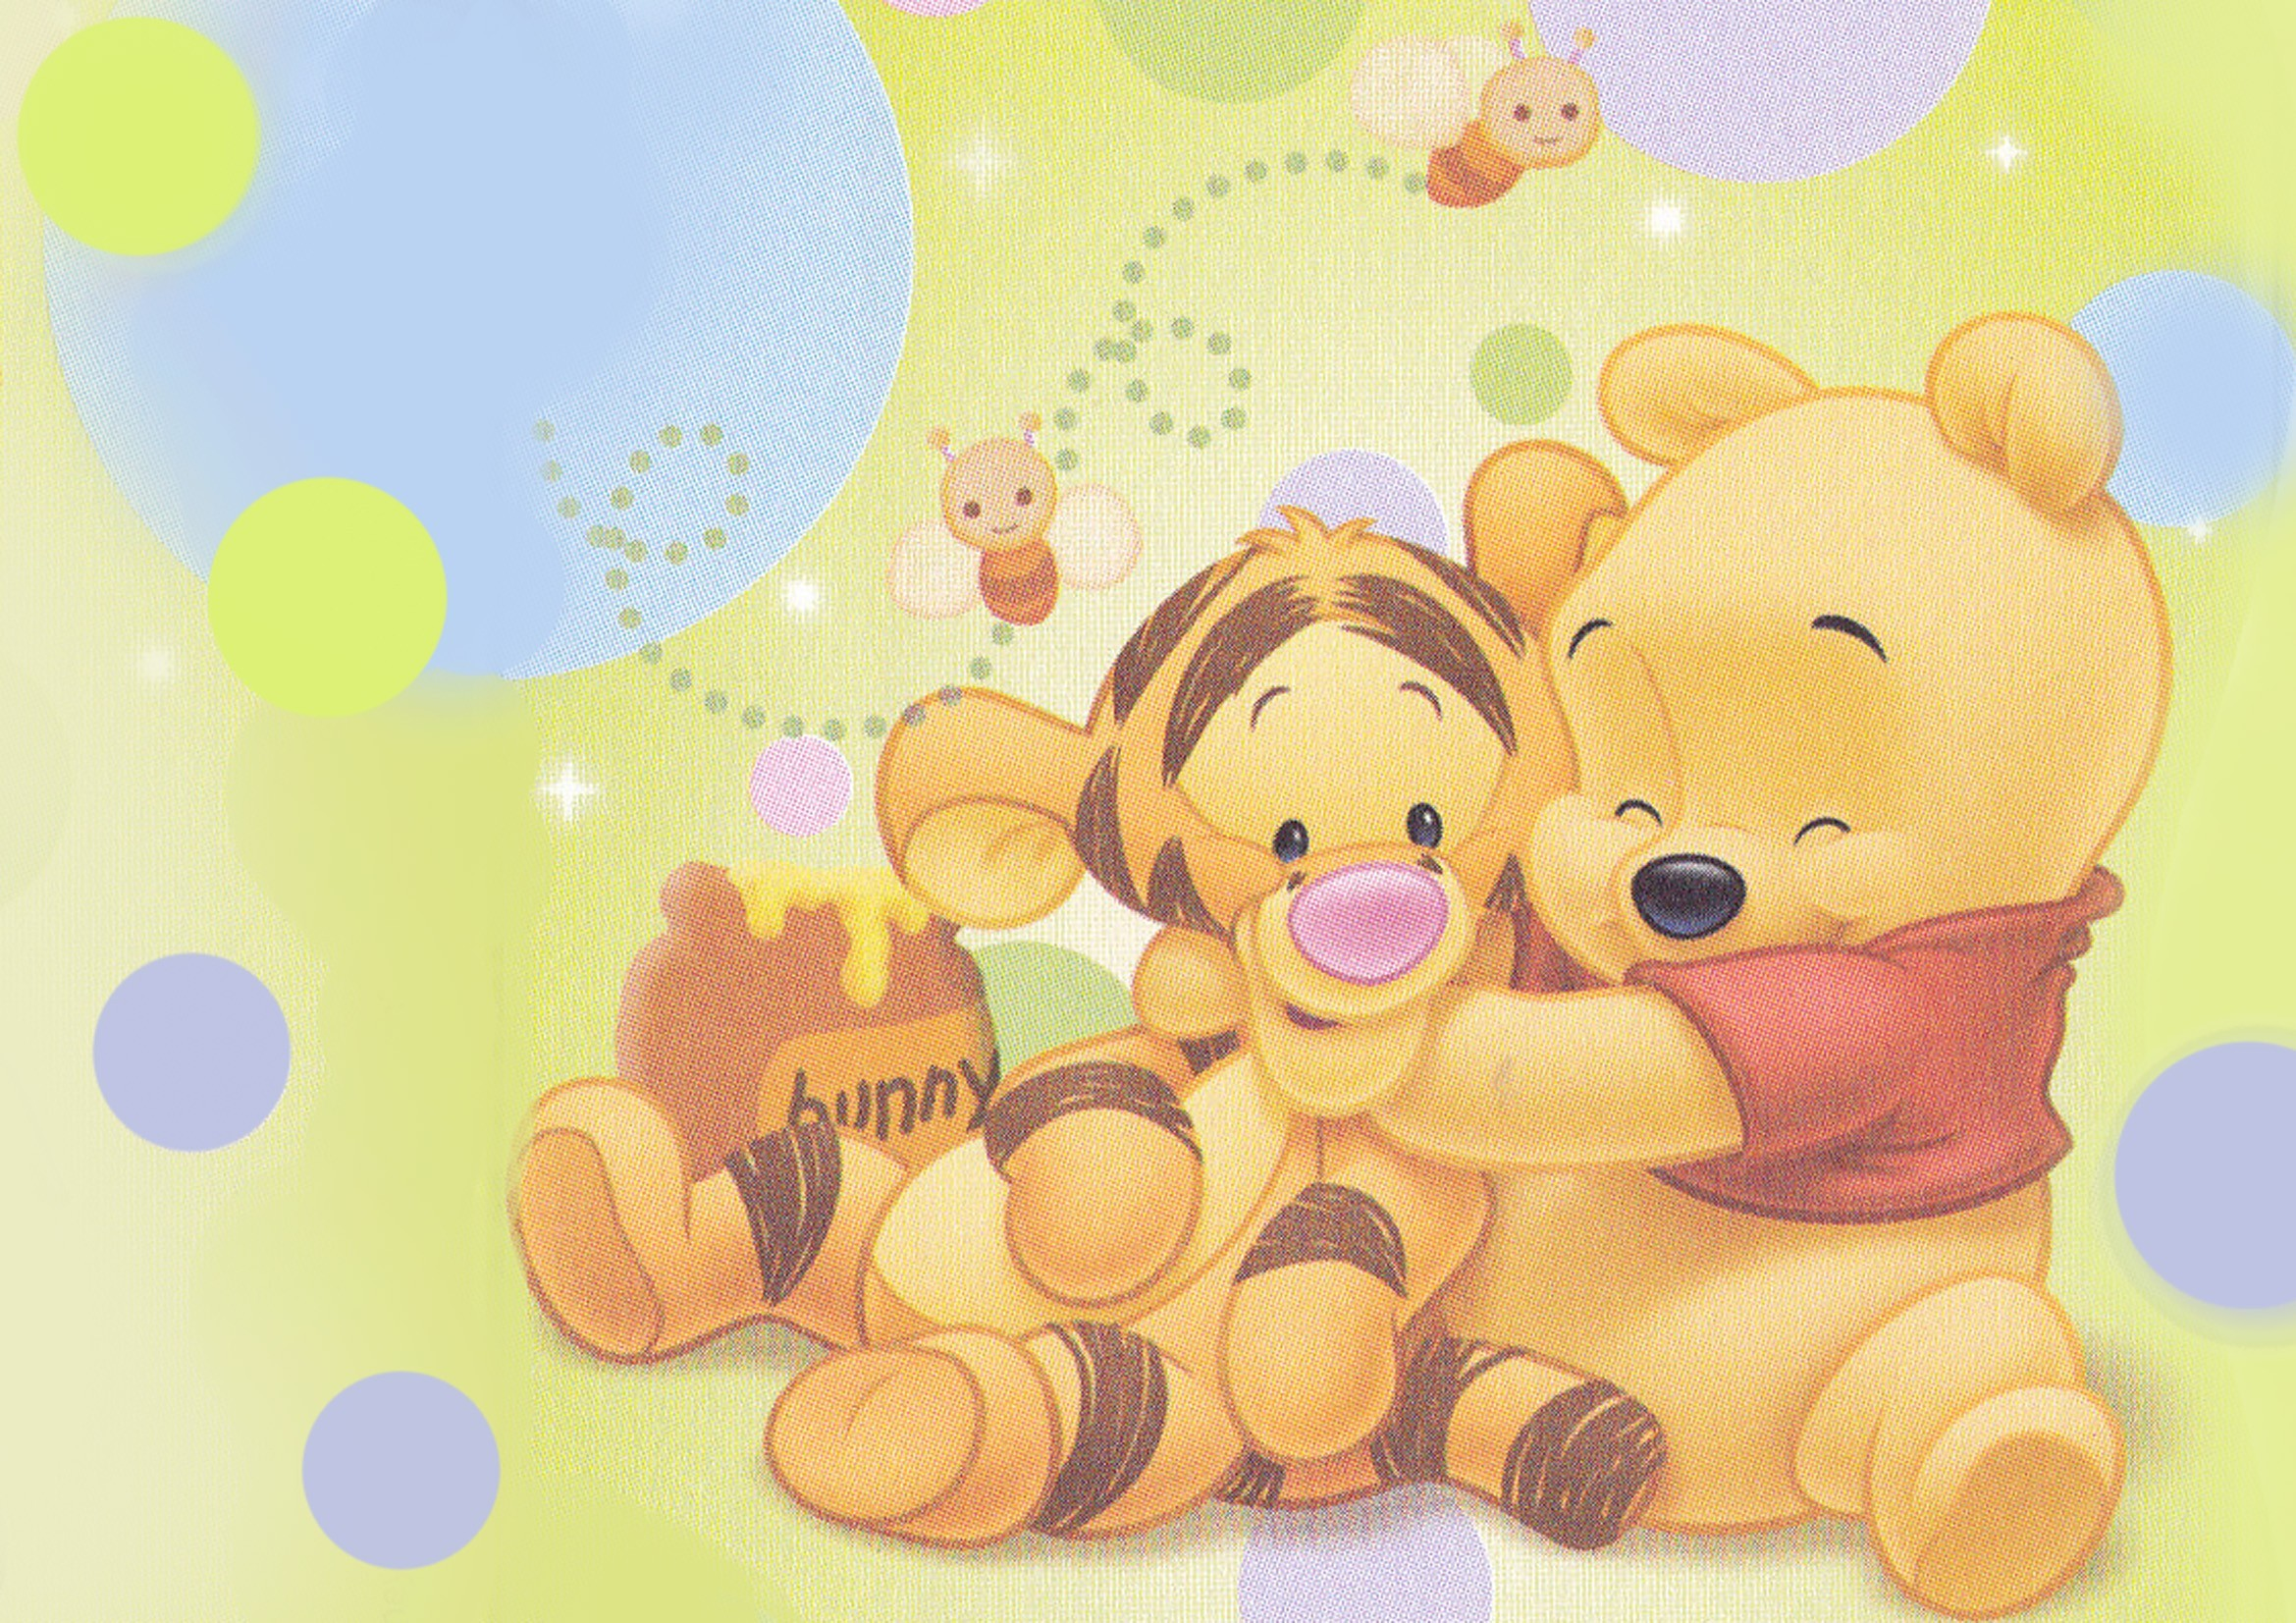 My friends tigger pooh wallpapers 65 background pictures 2339x1653 baby pooh images baby pooh wallpaper hd wallpaper and background photos altavistaventures Images